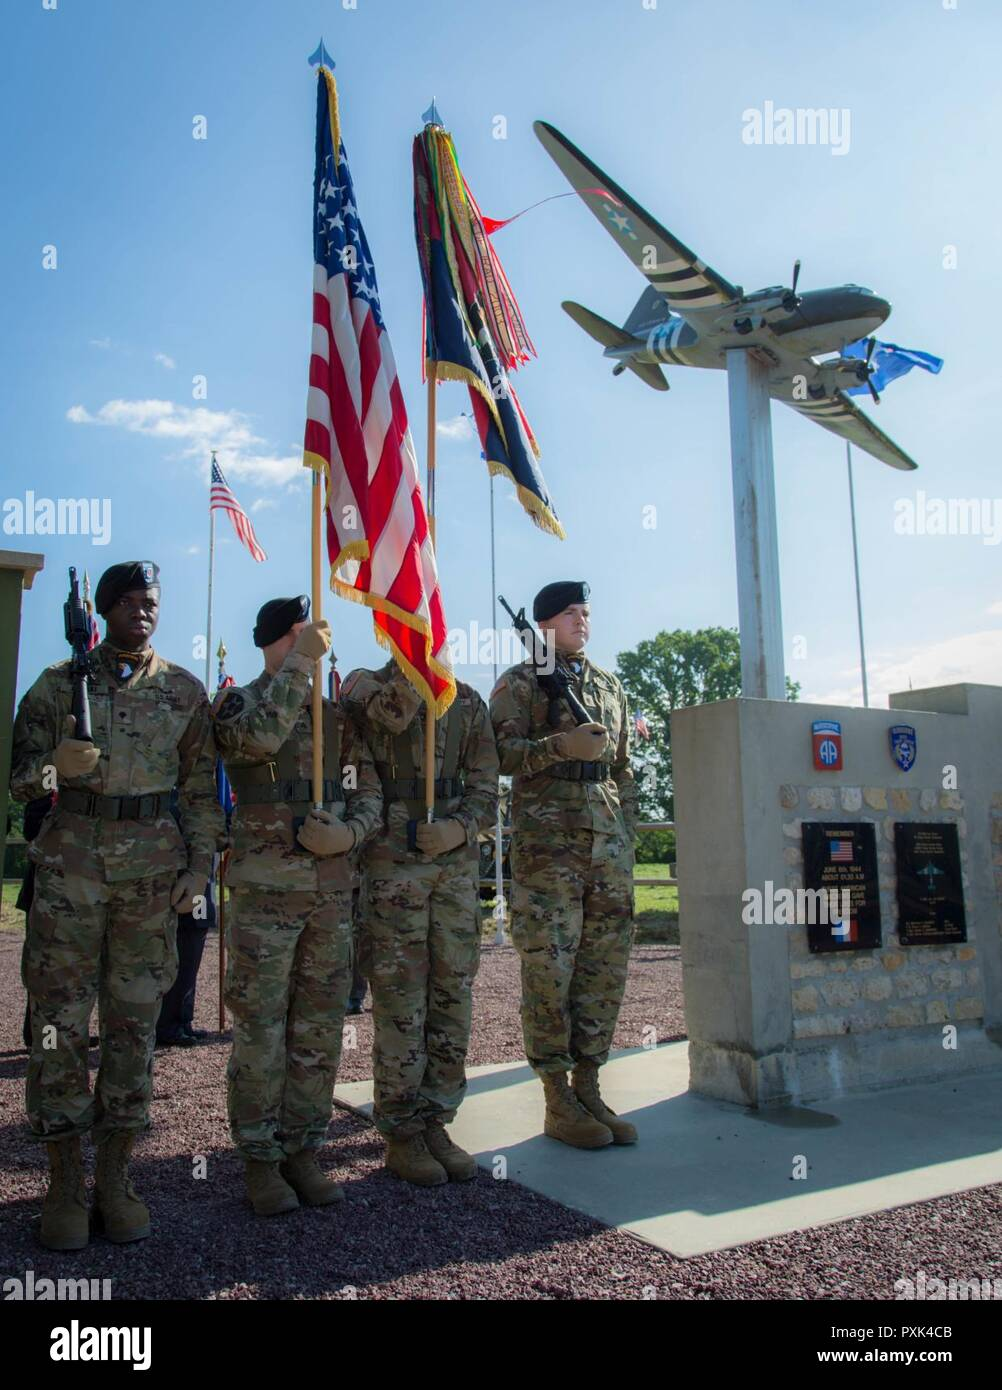 Soldiers of the 82nd Airborne Division serve as Color Guard